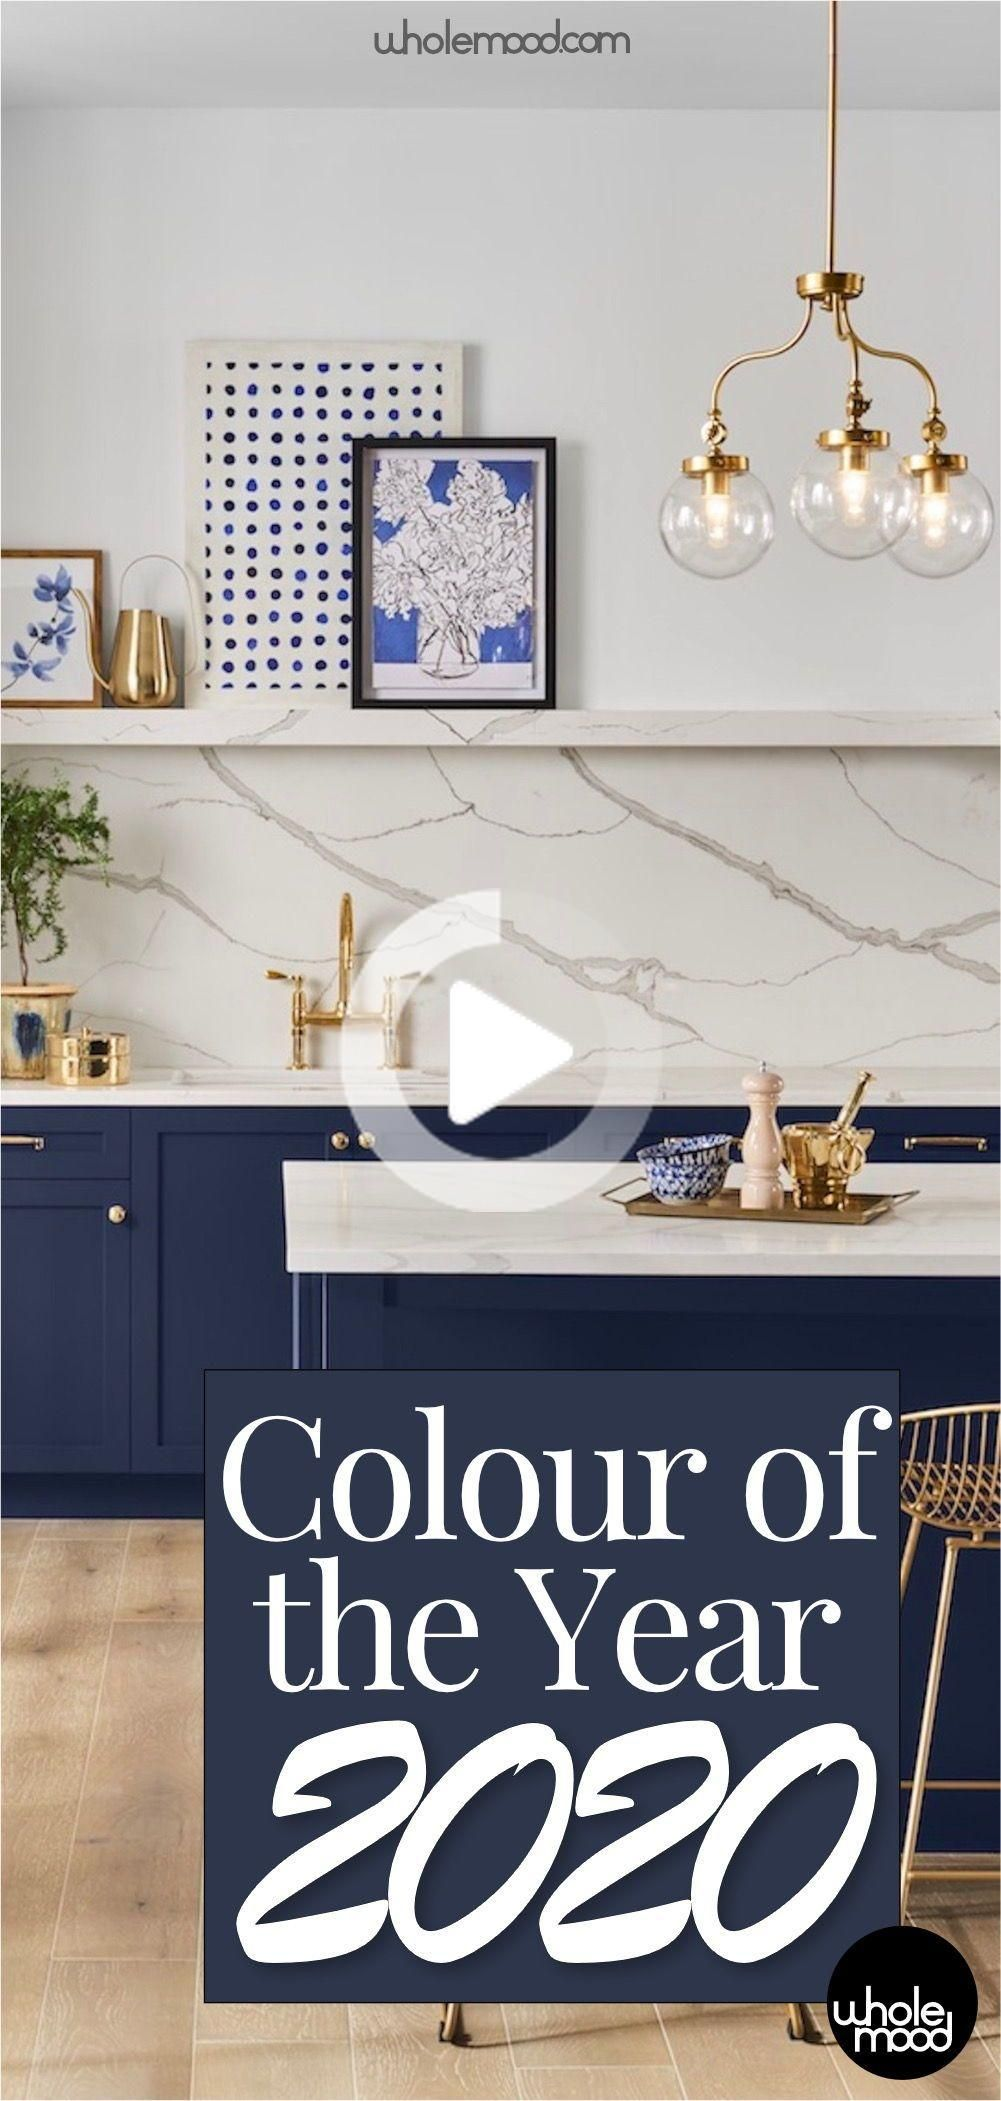 White Kitchen Cabinets With Grey Walls 2021 In 2020 White Kitchen Interior Kitchen Cabinets Decor Best Kitchen Cabinets